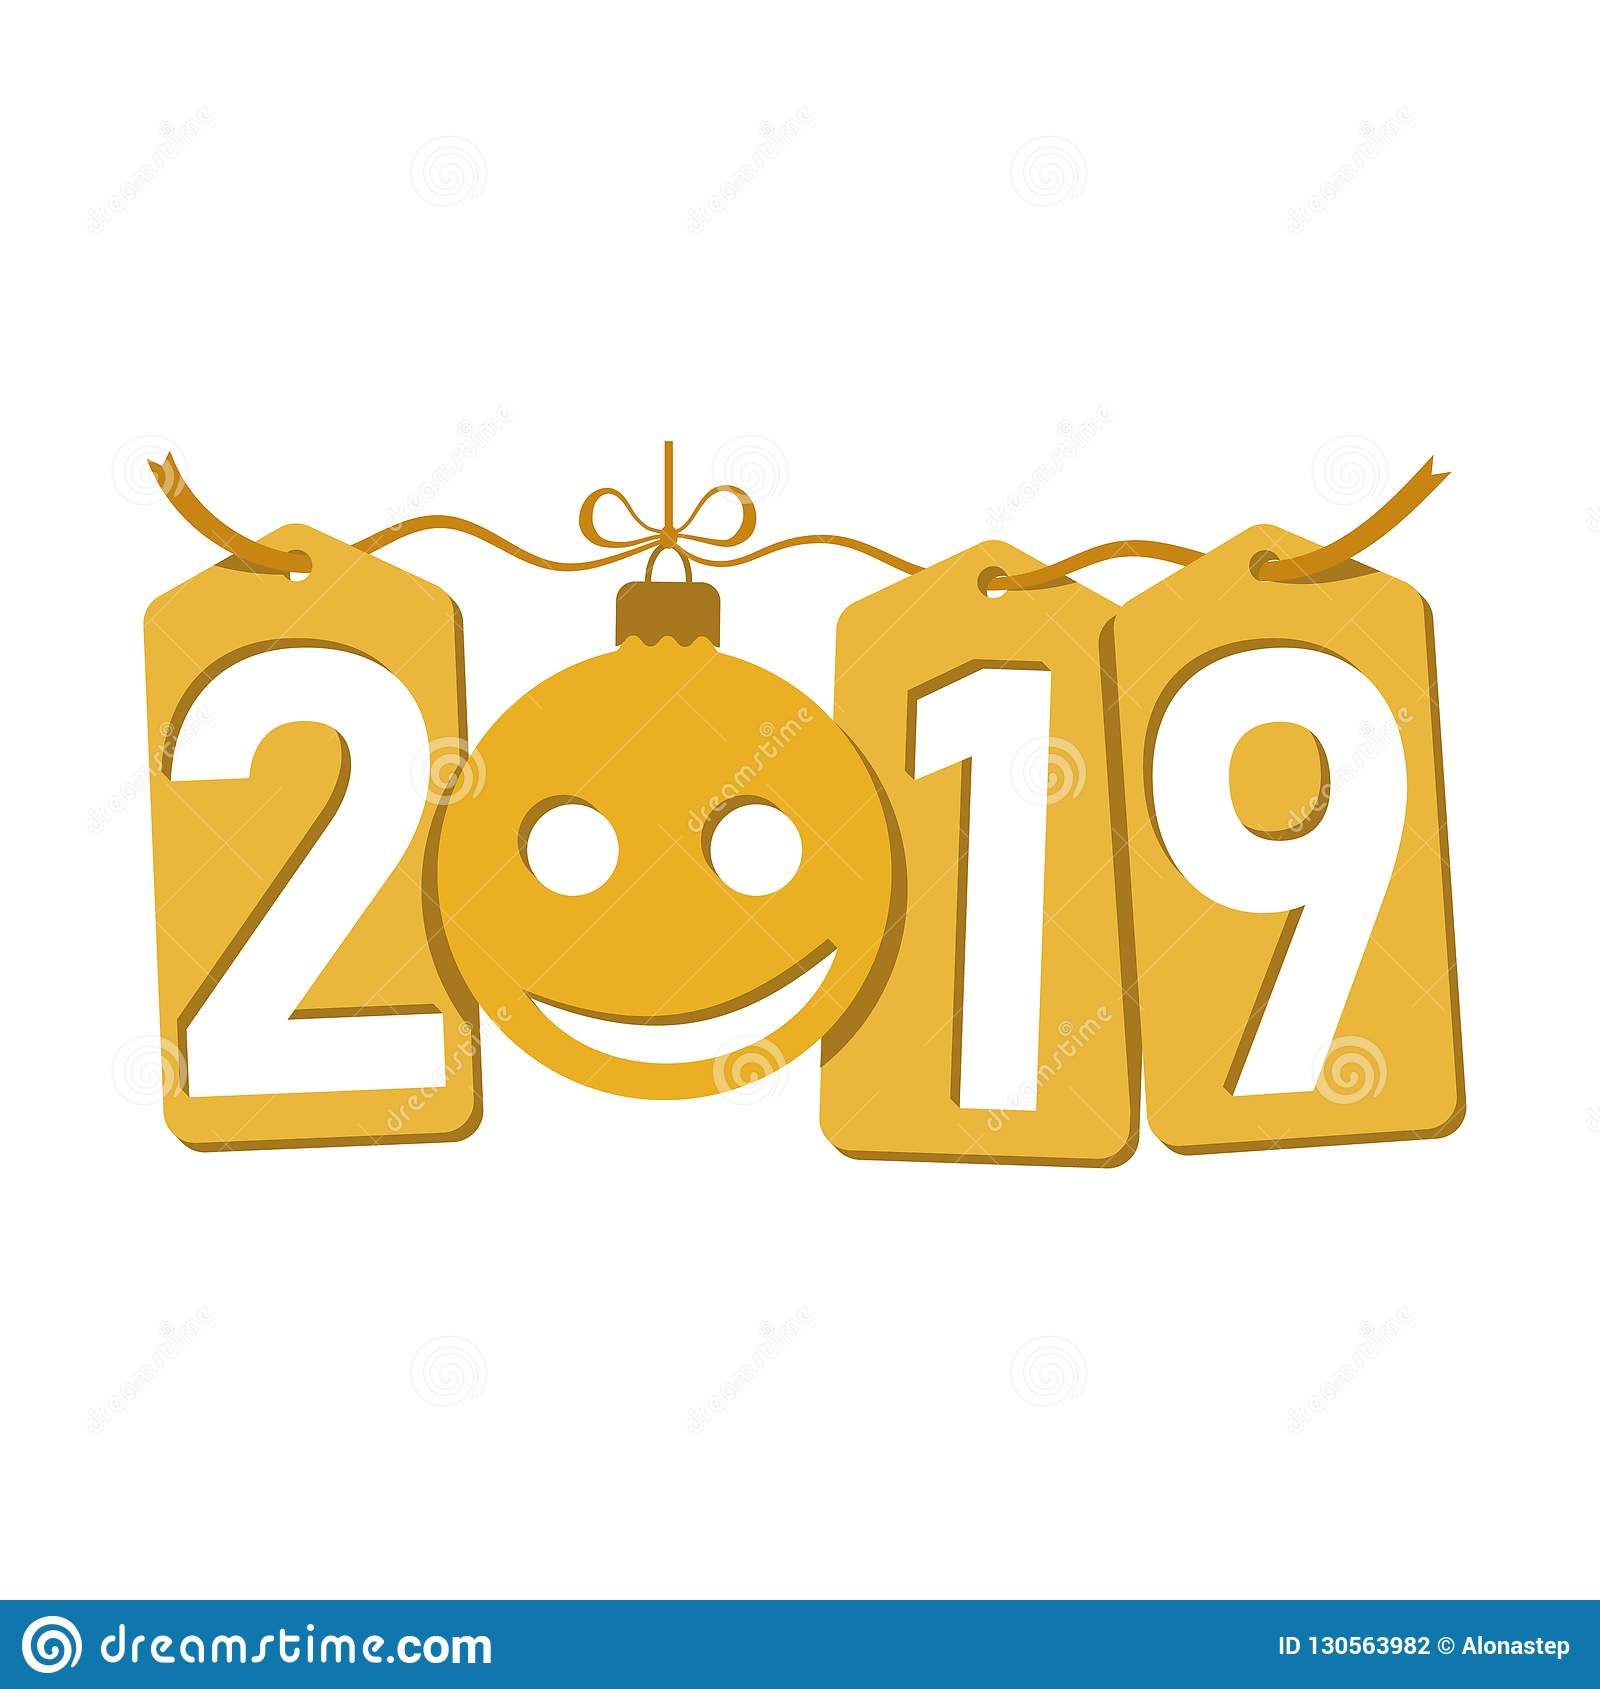 happe new year gold background isolated 2019 golden numbers tags bauble emoticon